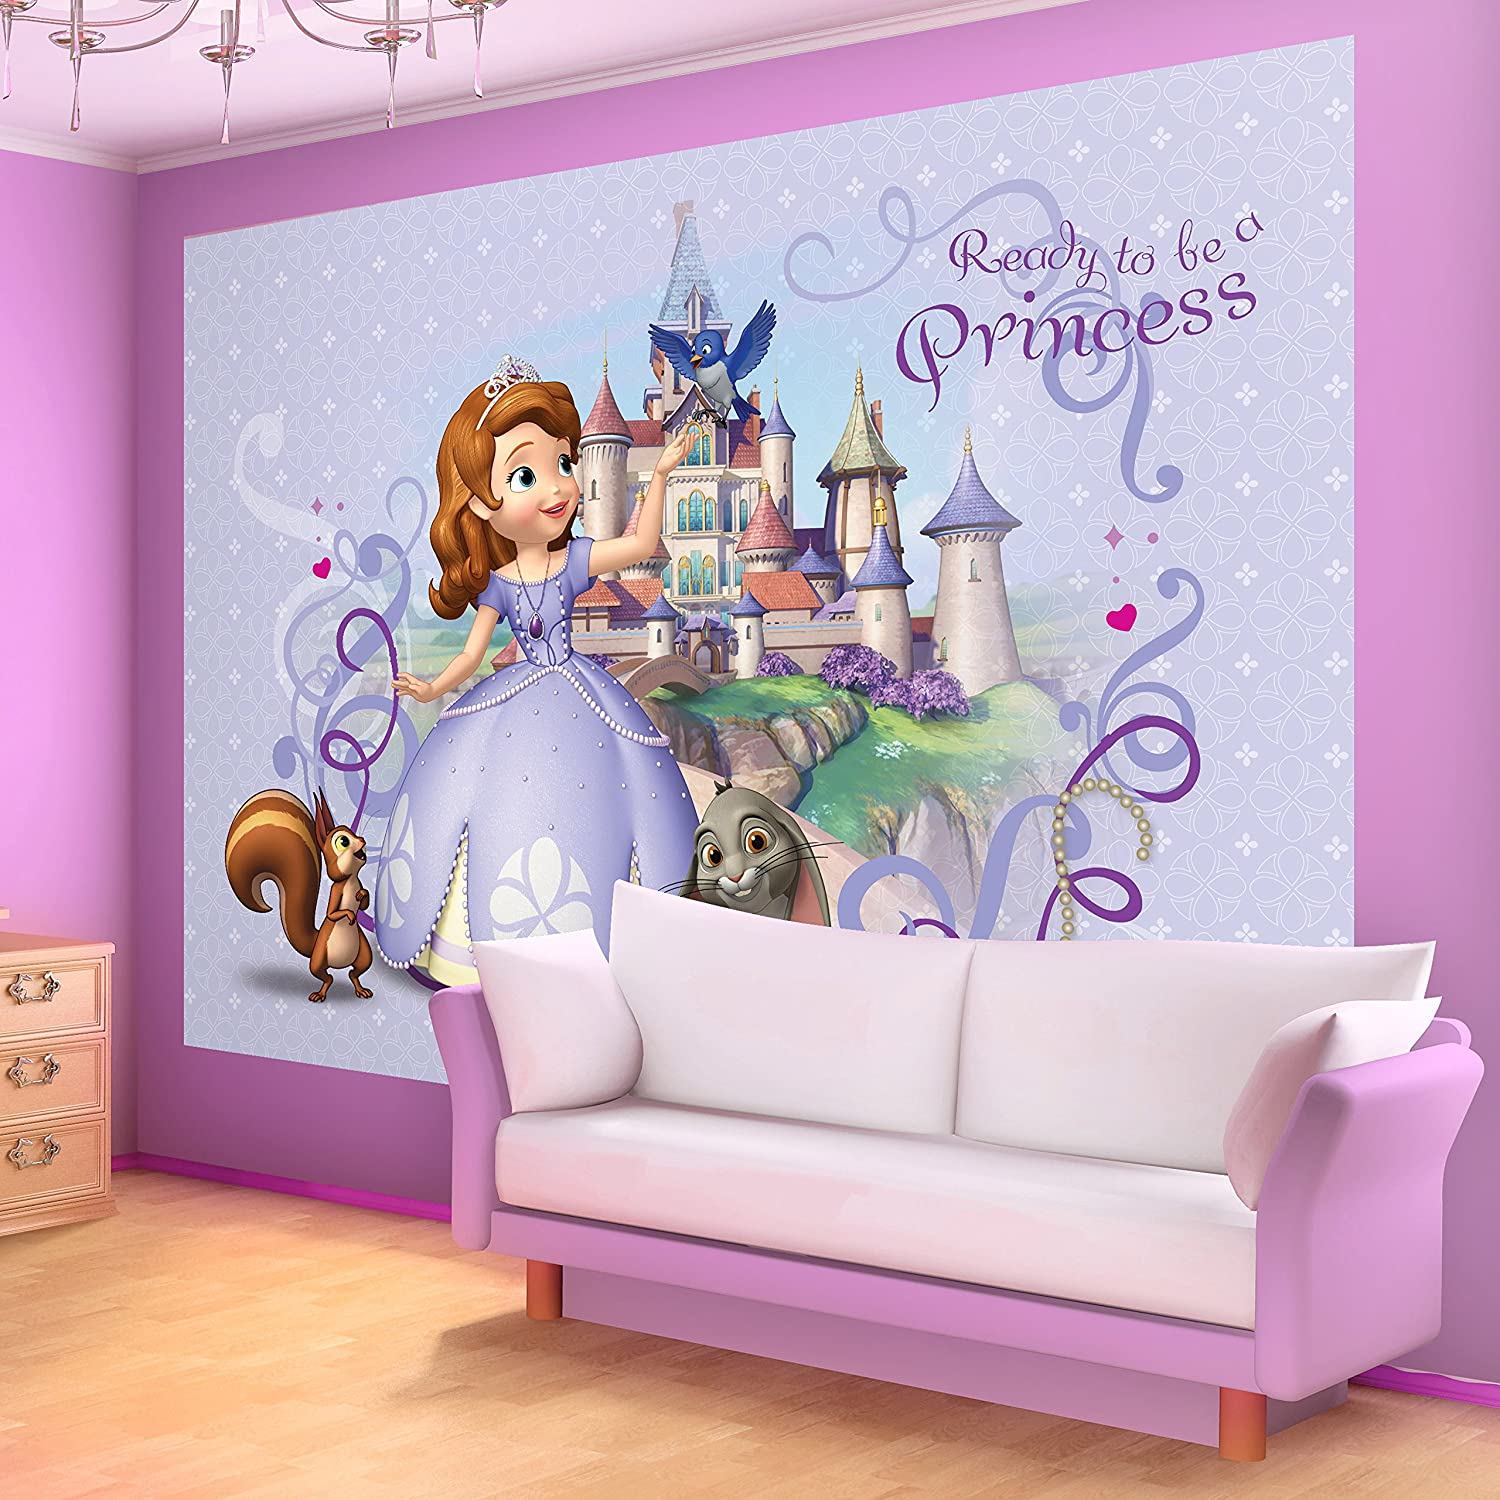 Disney sofia the first wallpaper mural amazon diy tools amipublicfo Images